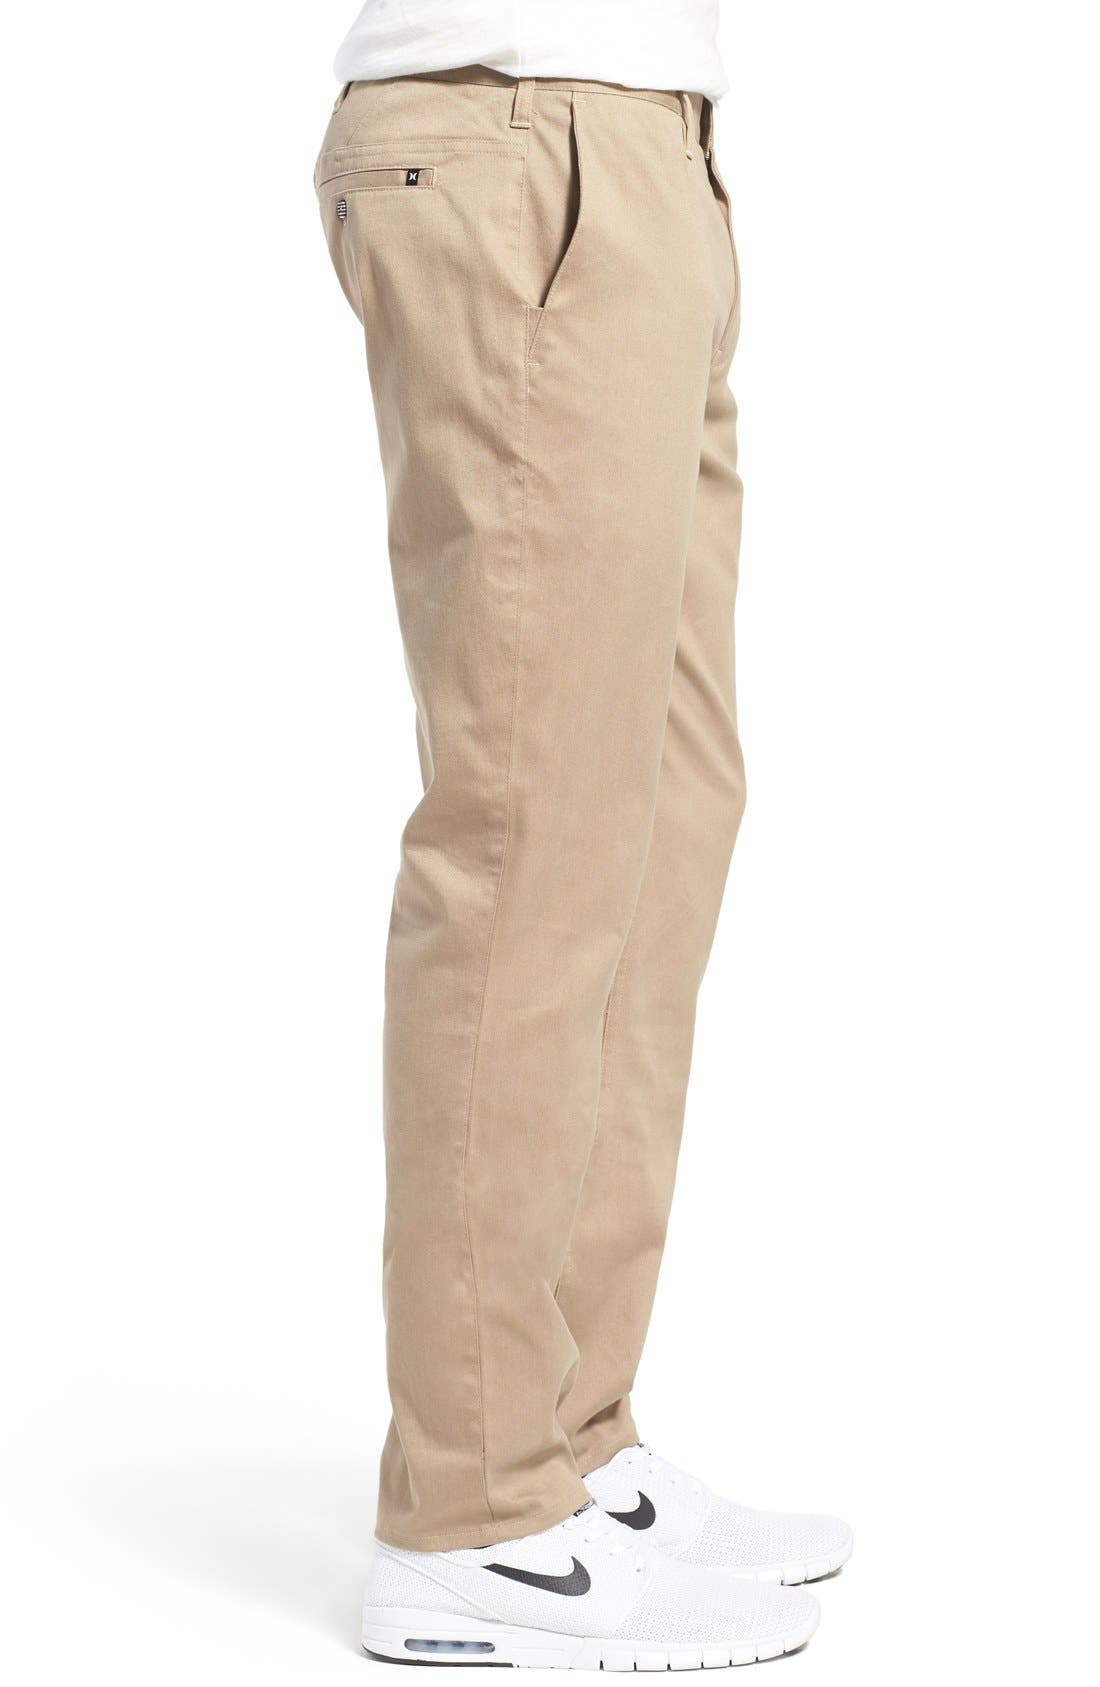 Dri-FIT Chinos,                             Alternate thumbnail 3, color,                             Beige